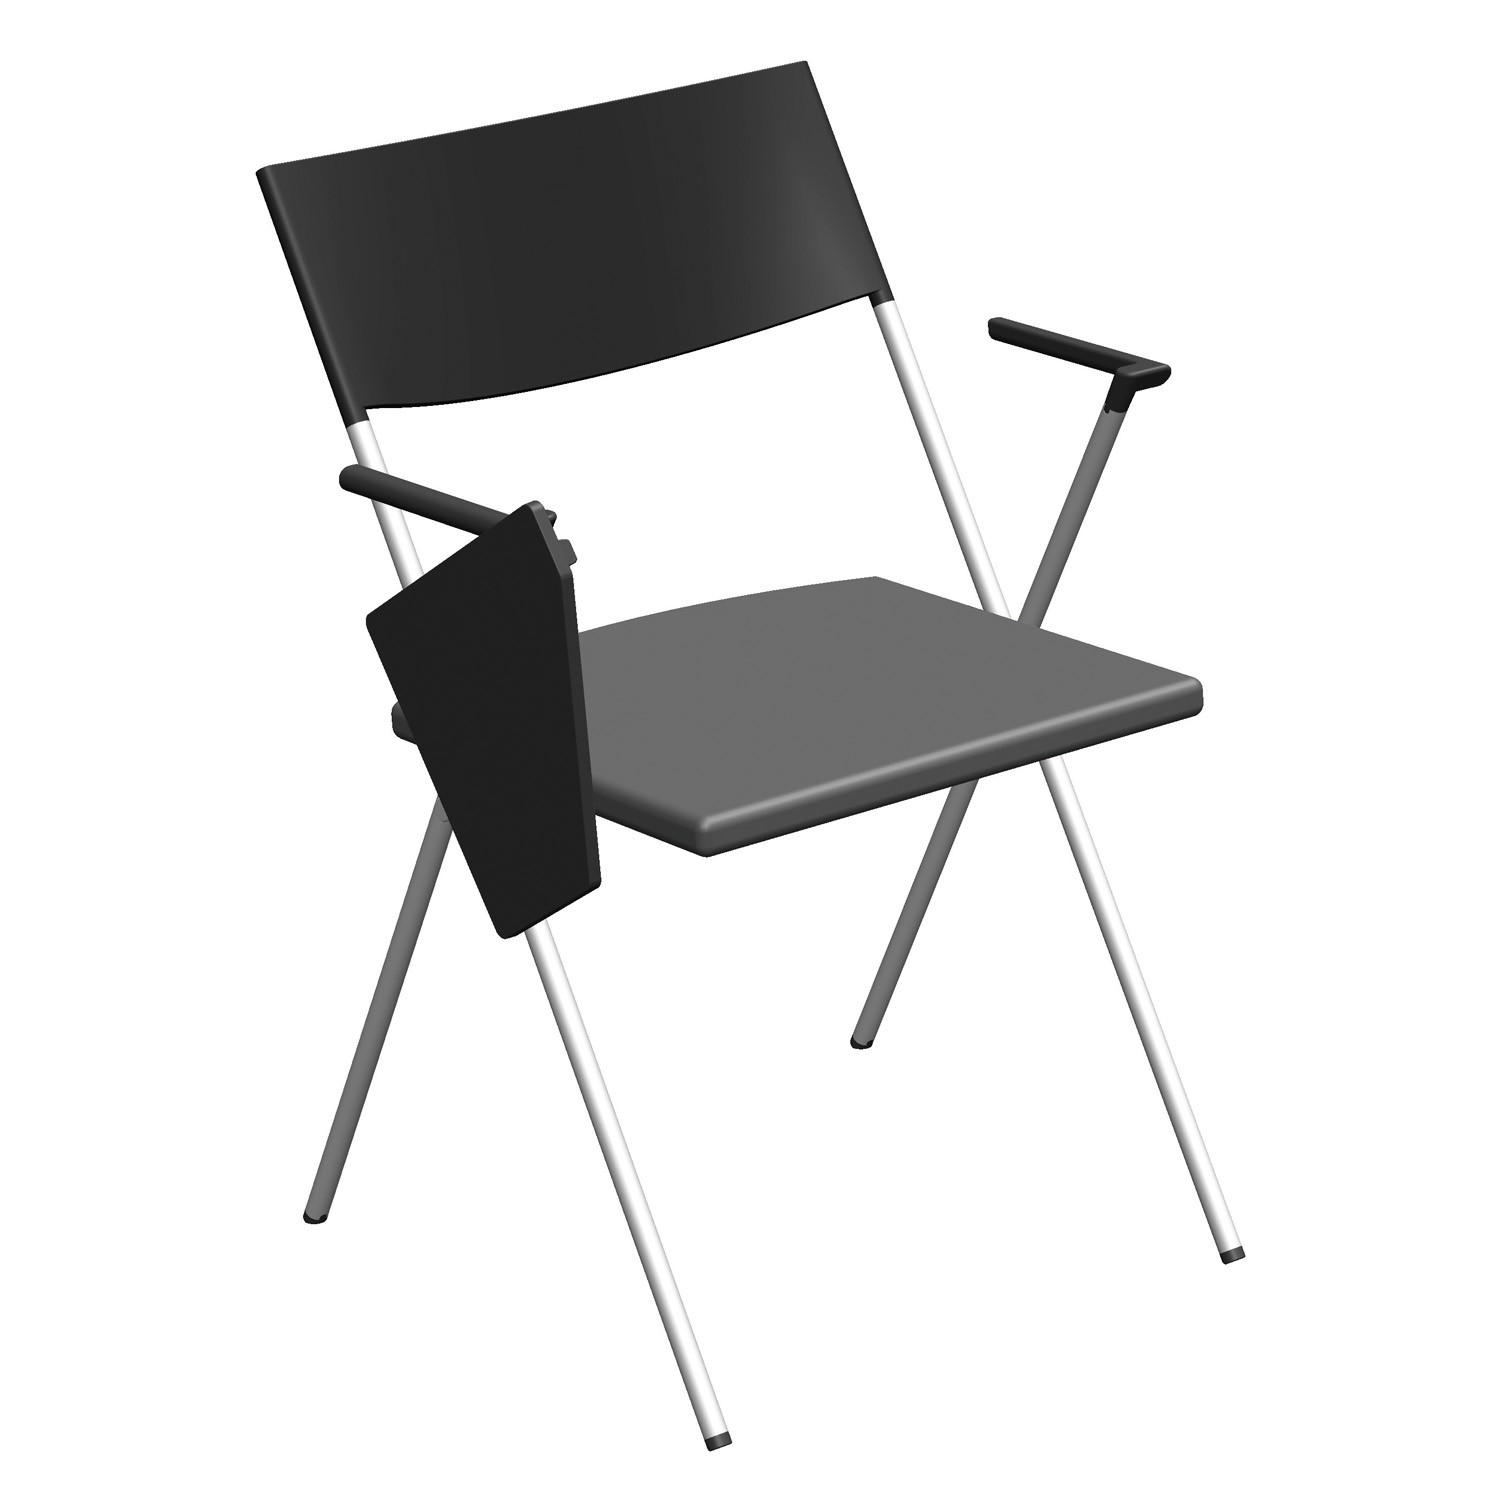 Strym Chair with writing tablet